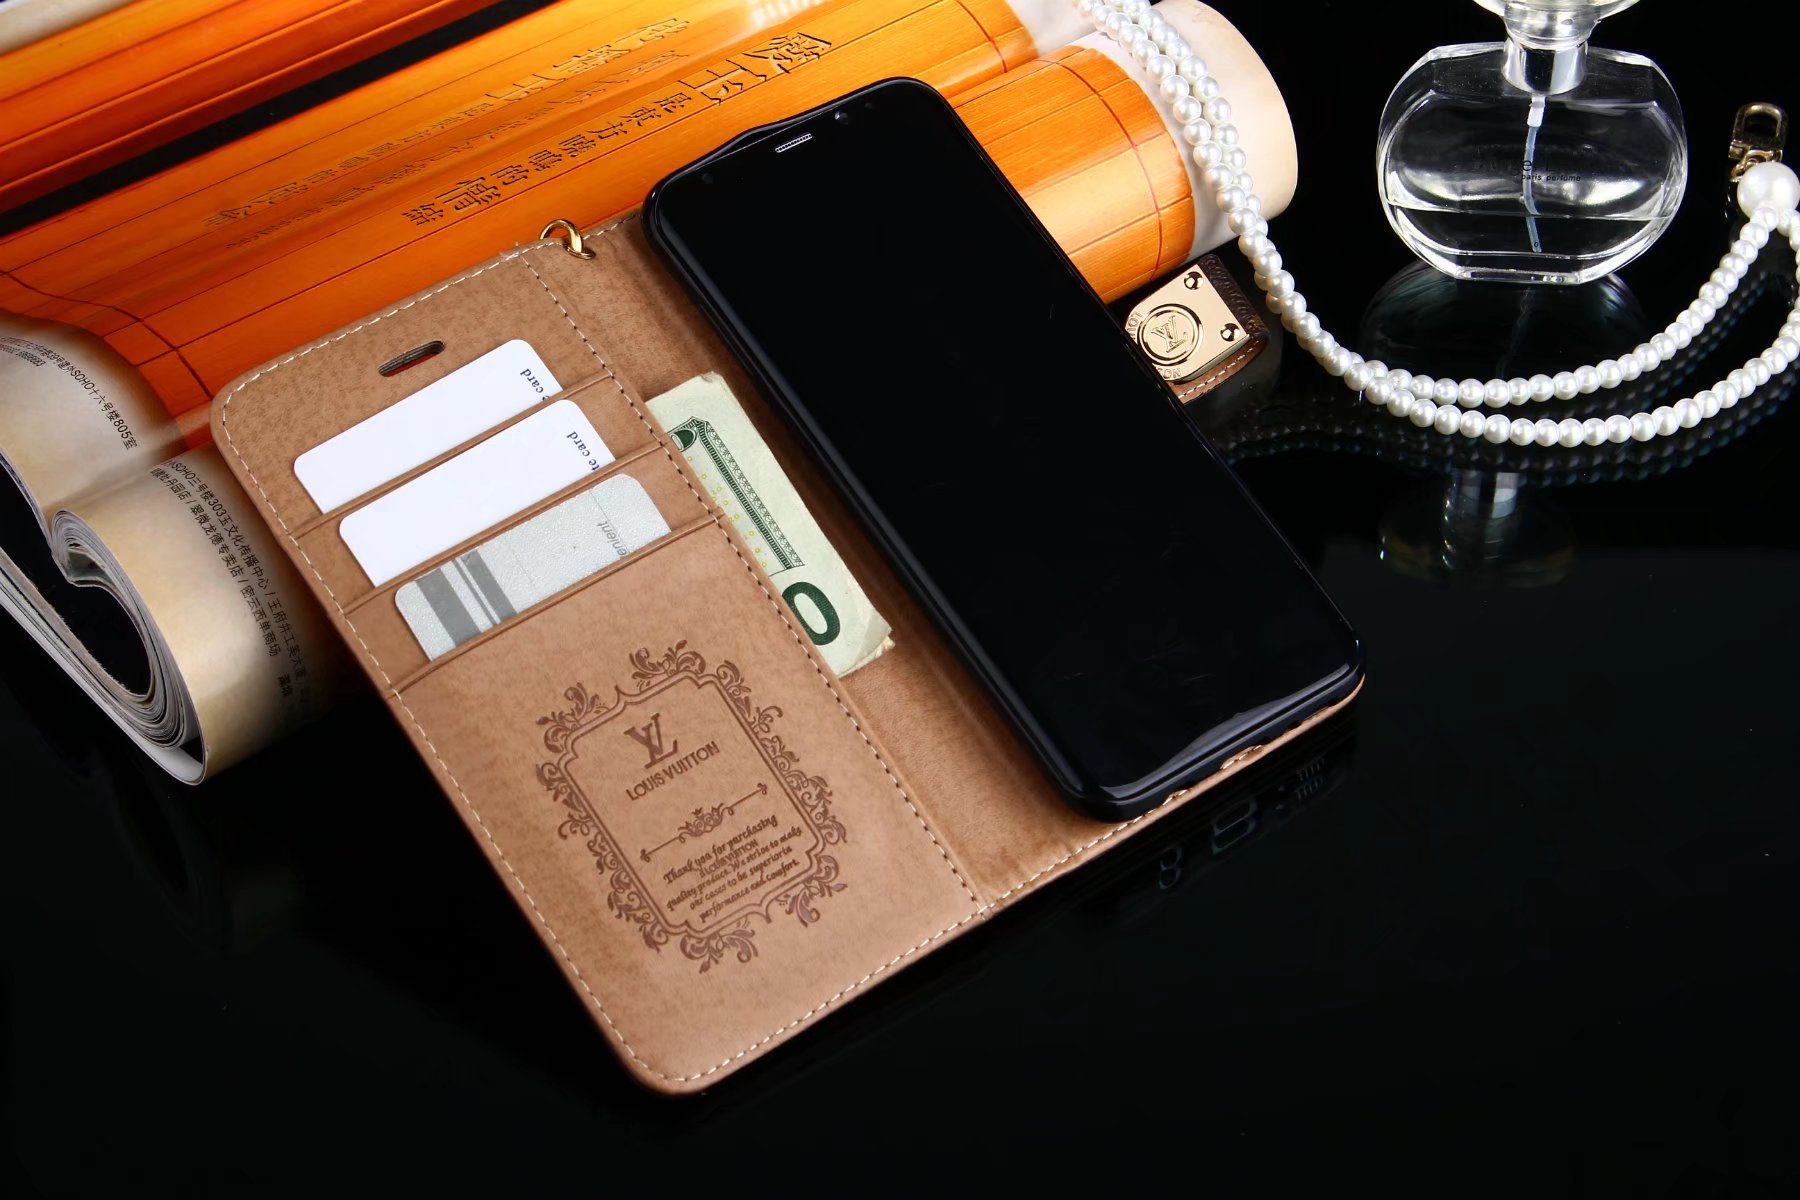 galaxy S8 tpu case leather case for samsung galaxy S8 Louis Vuitton Galaxy S8 case samsung galaxy S8 models samsung S8 view cover galaxy S8 case slim armor samsung galaxy S8 charging port S8 samsung galaxy cell phone cases for galaxy S8